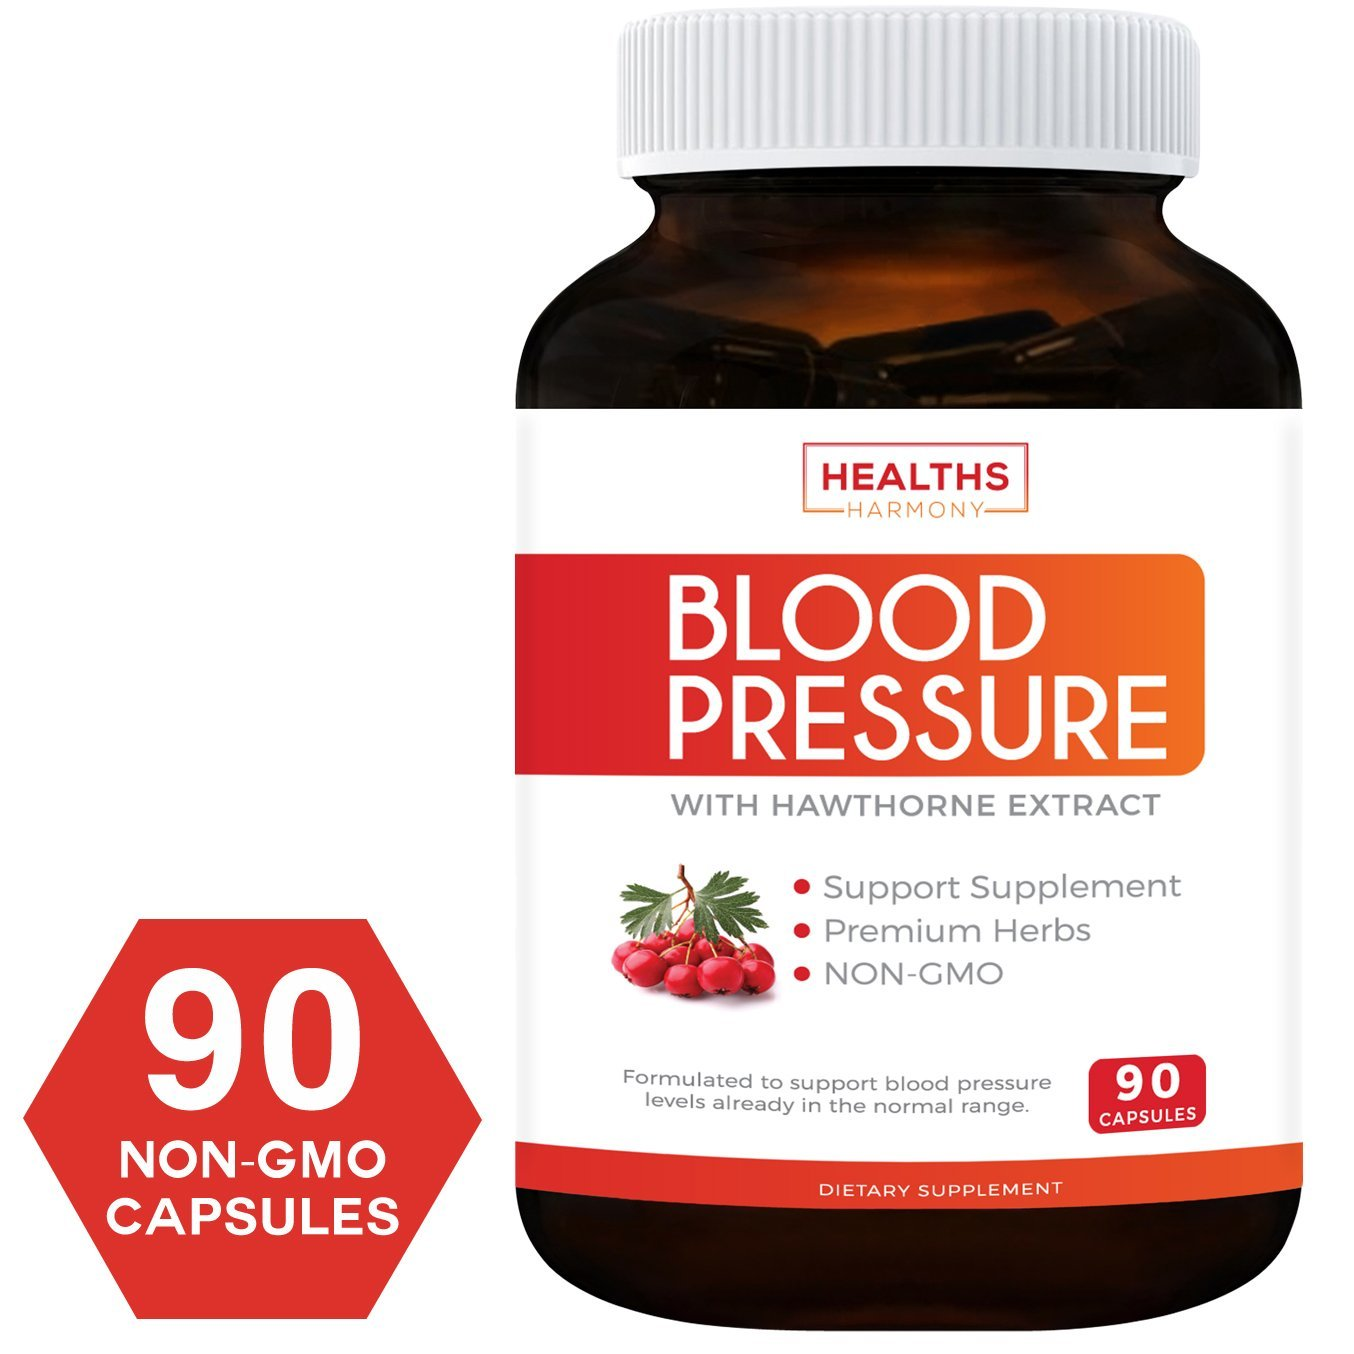 Blood Pressure Support Supplement (Non-GMO) – Premium Natural Herbs, Vitamins & Berries – High Dosage of Hawthorn Extract – Berry Lower Pills – 90 Capsules